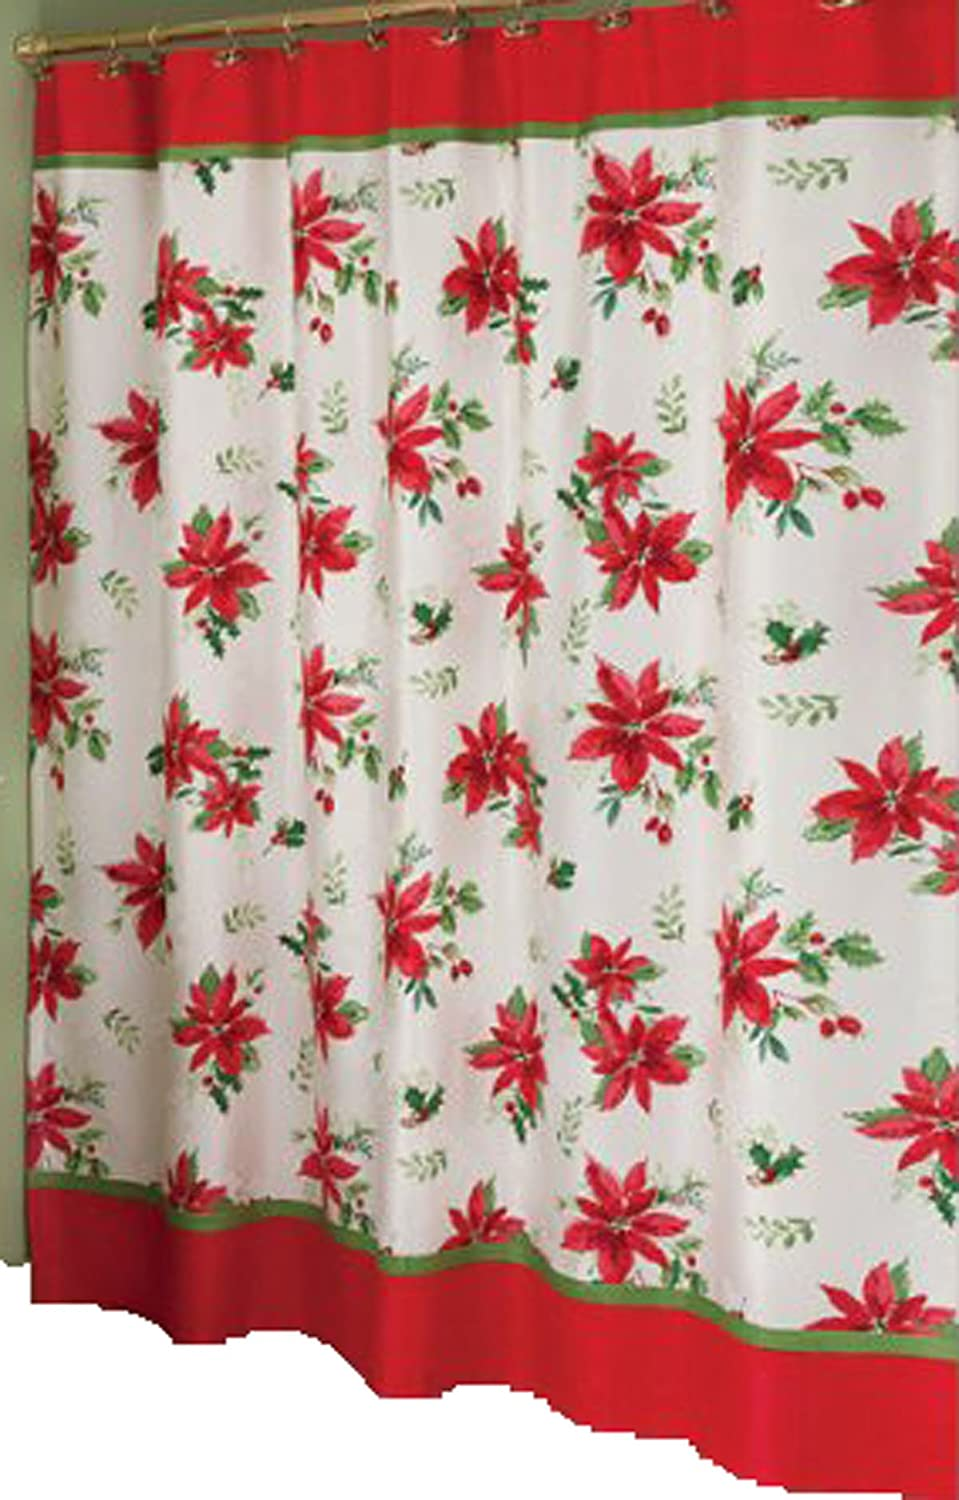 Lenox Holiday Shower Curtain Part - 38: Lenox Holiday Shower Curtain Features A Bright Red Christmas Poinsettia  Floral Motif. Coordinates With Towels And Other Bath Accessories (sold  Separately).